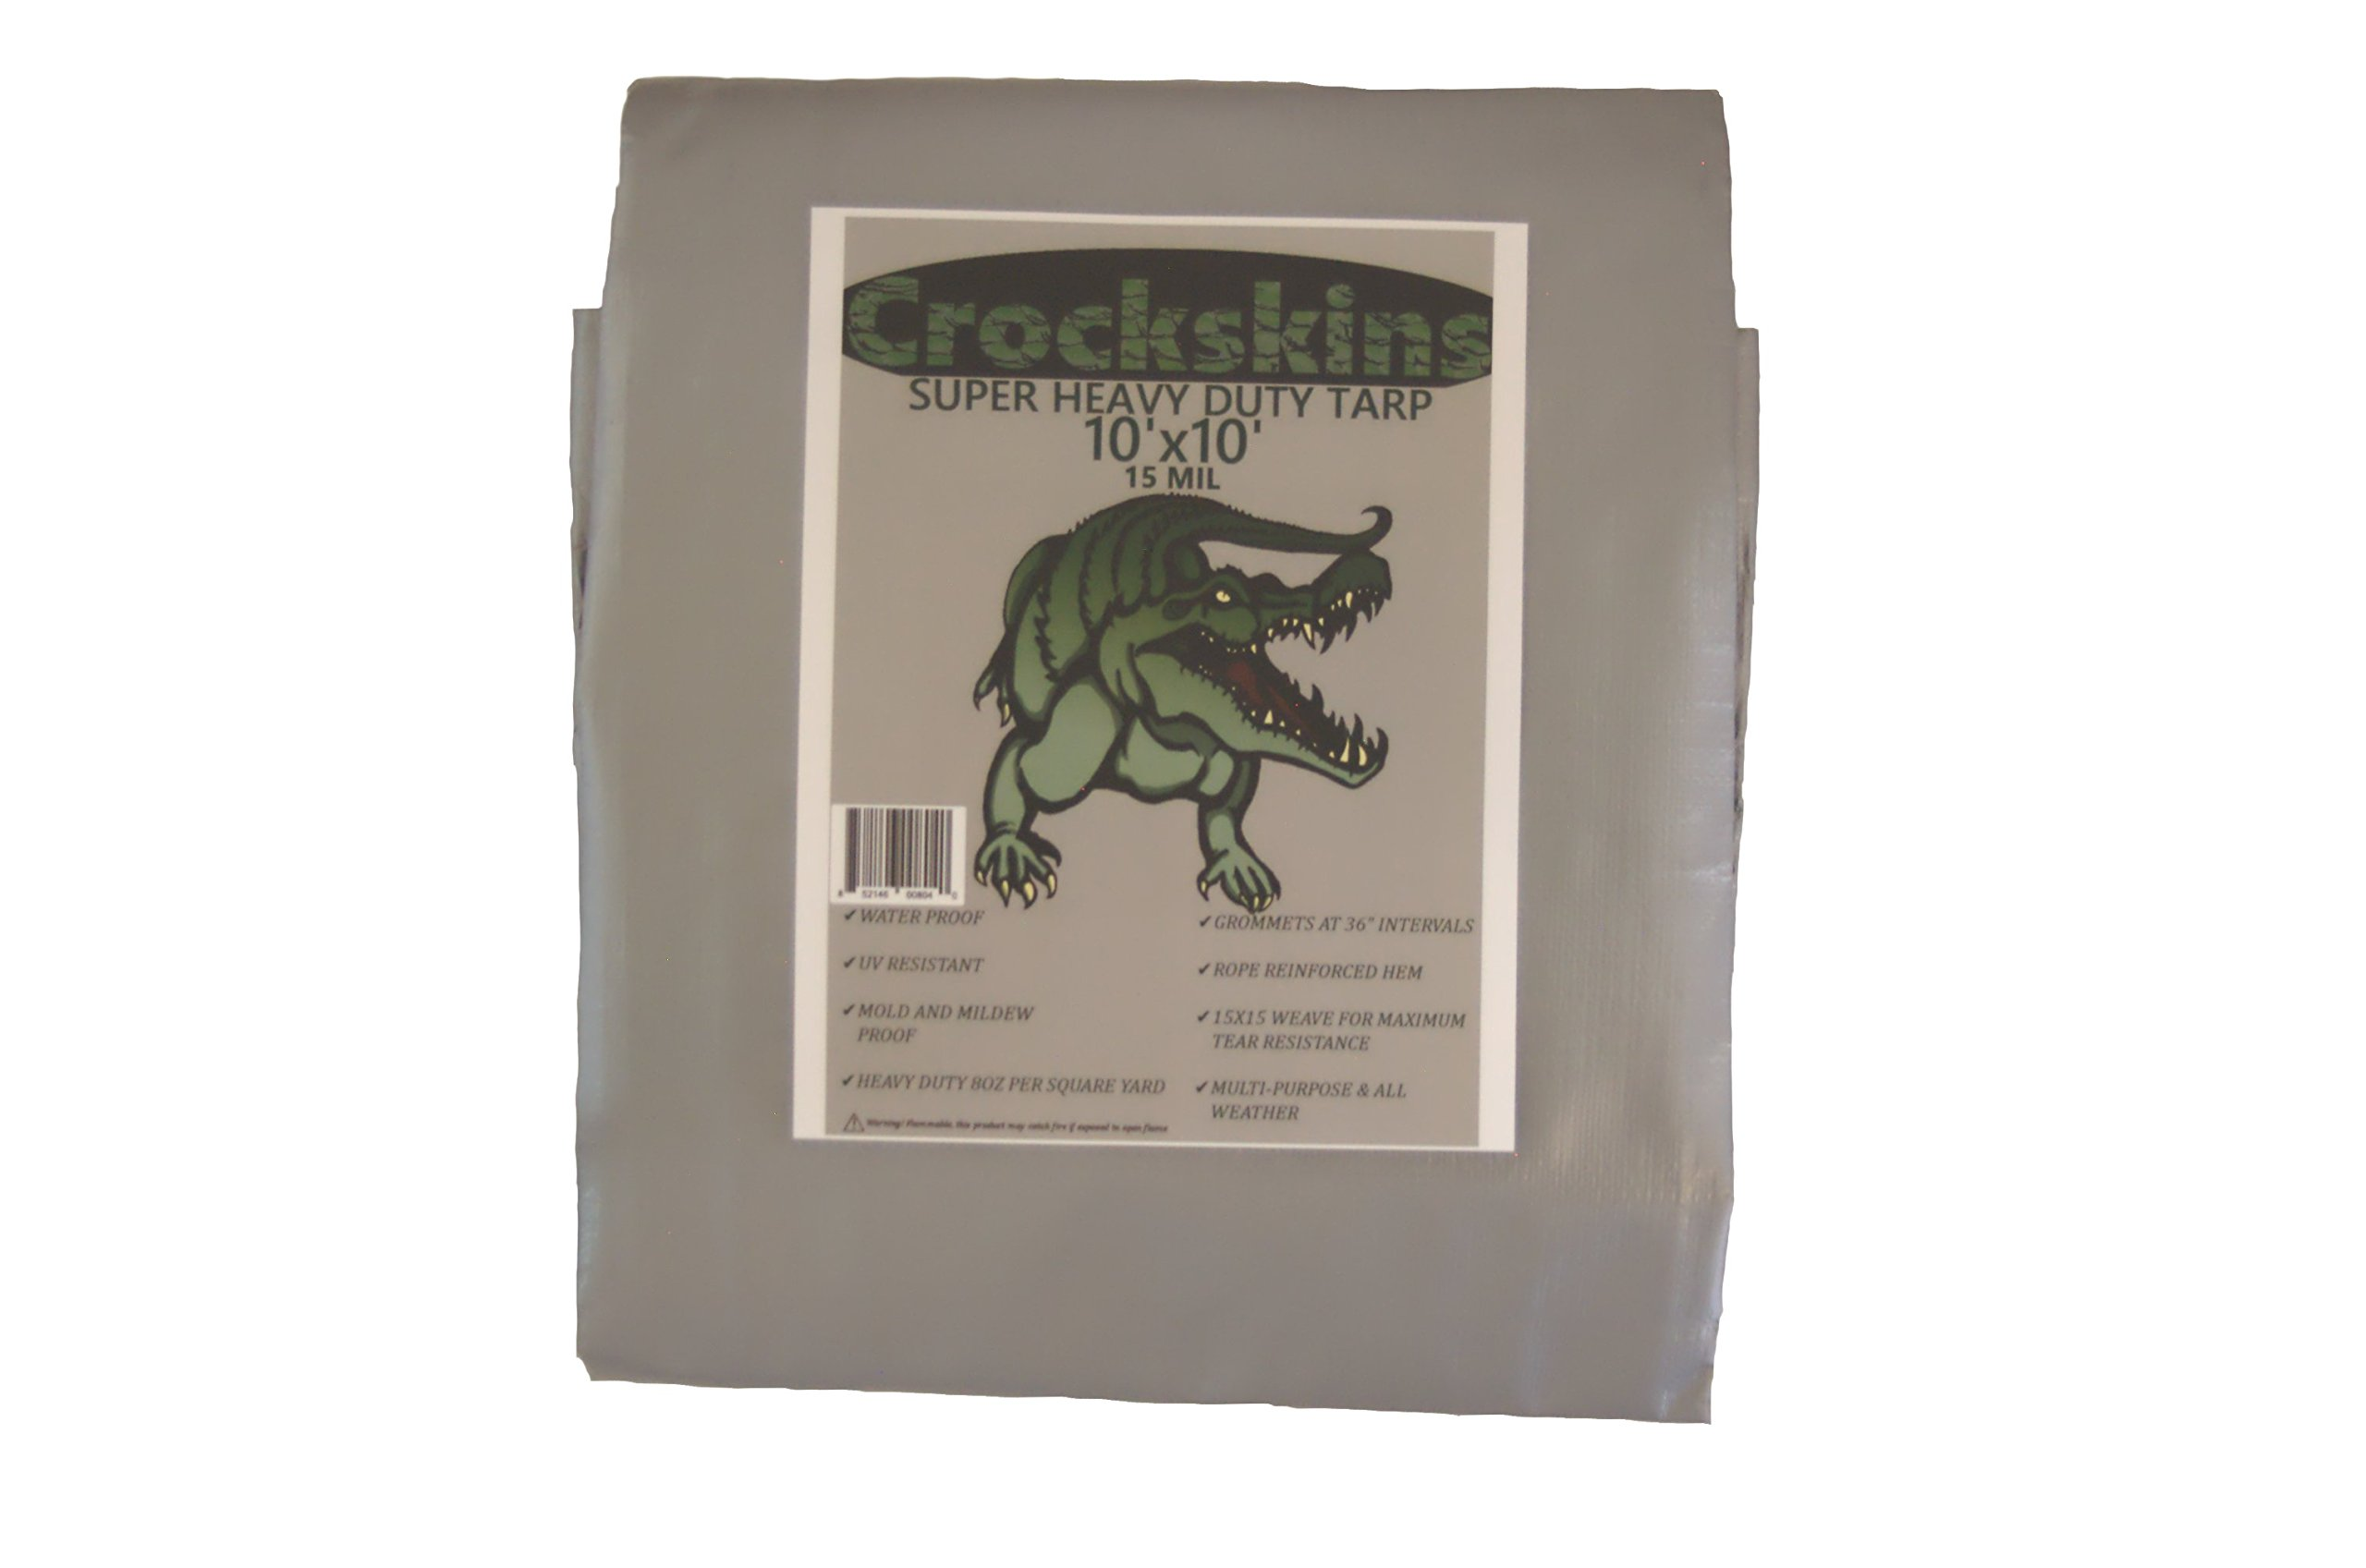 Crockskins UV Treated, Waterproof, Thick, Super Heavy Duty Tarp, Reversible Silver/Brown (10'x10')